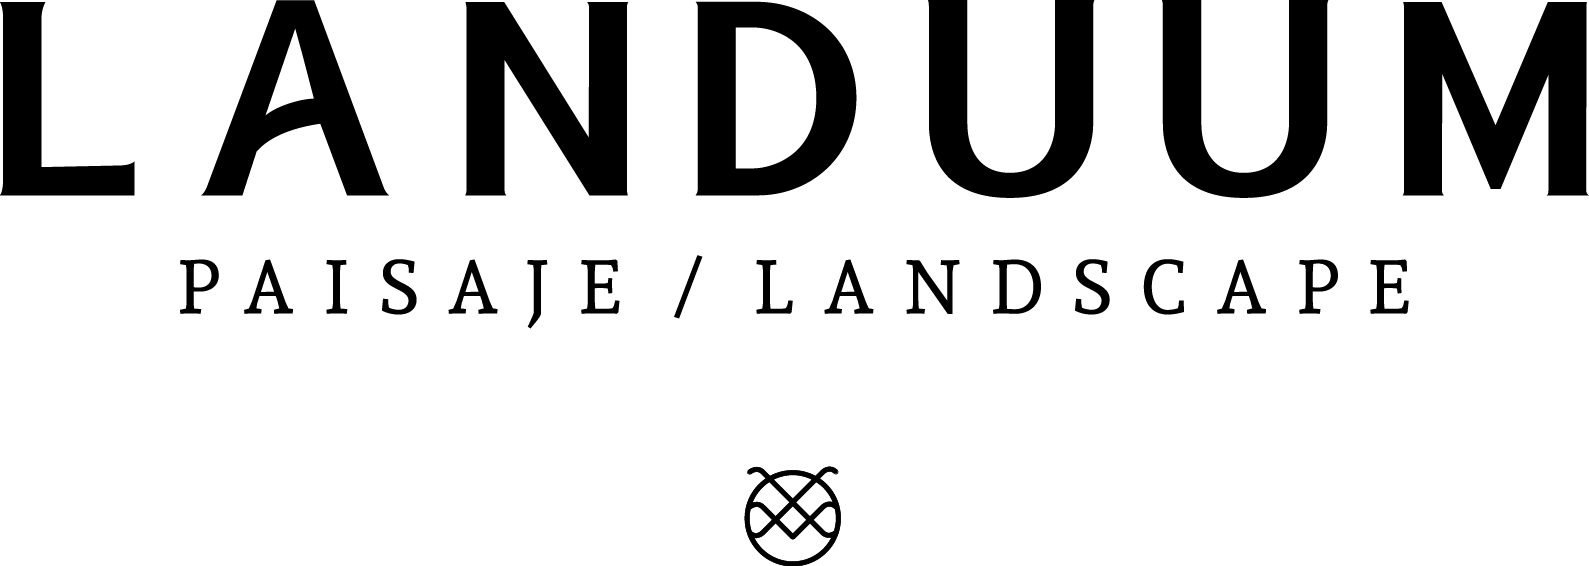 Revista Landuum – Just another WordPress site